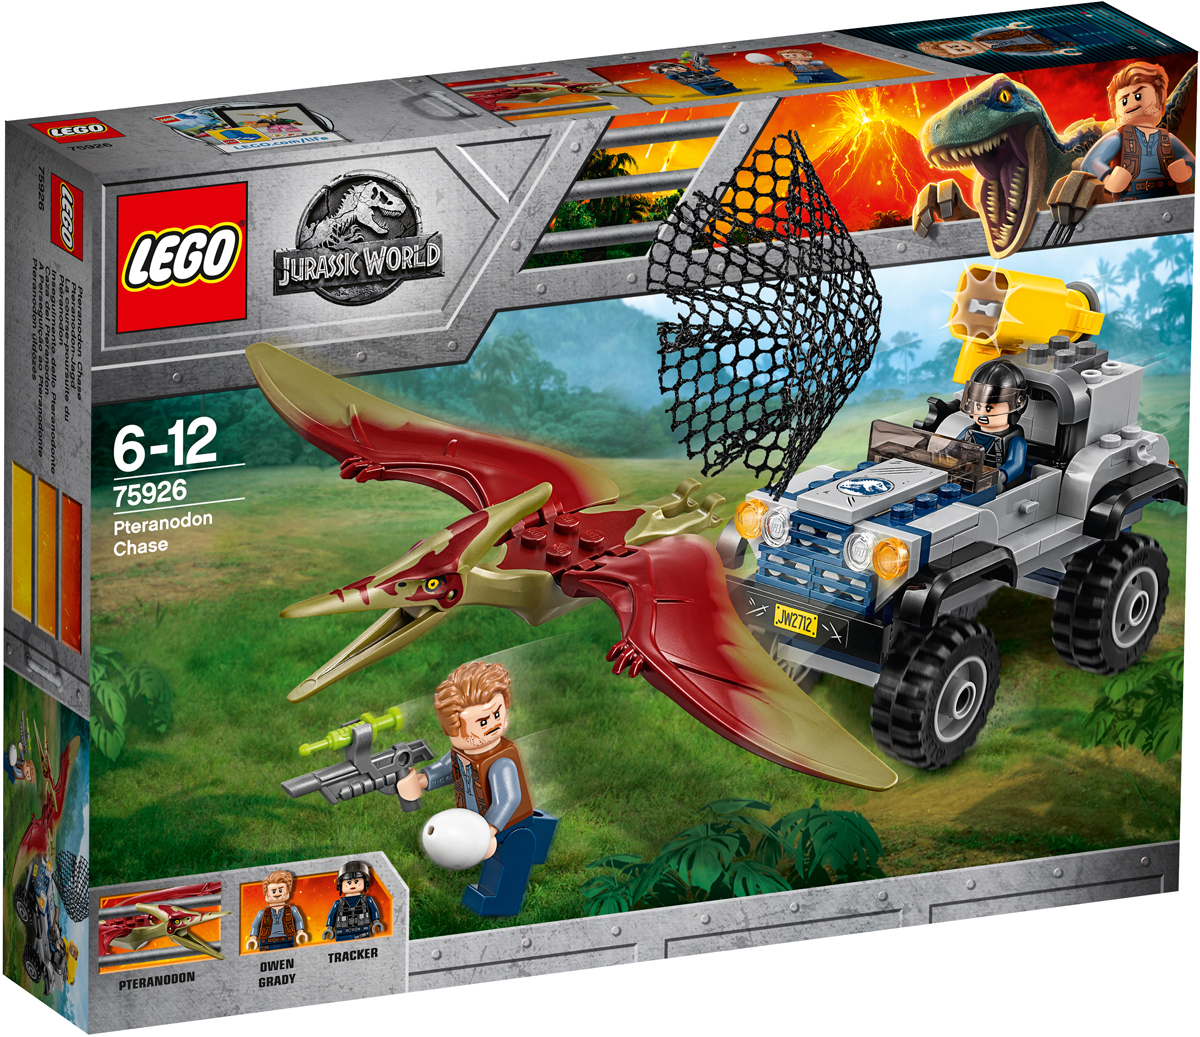 LEGO Jurassic World Конструктор Погоня за птеранодоном